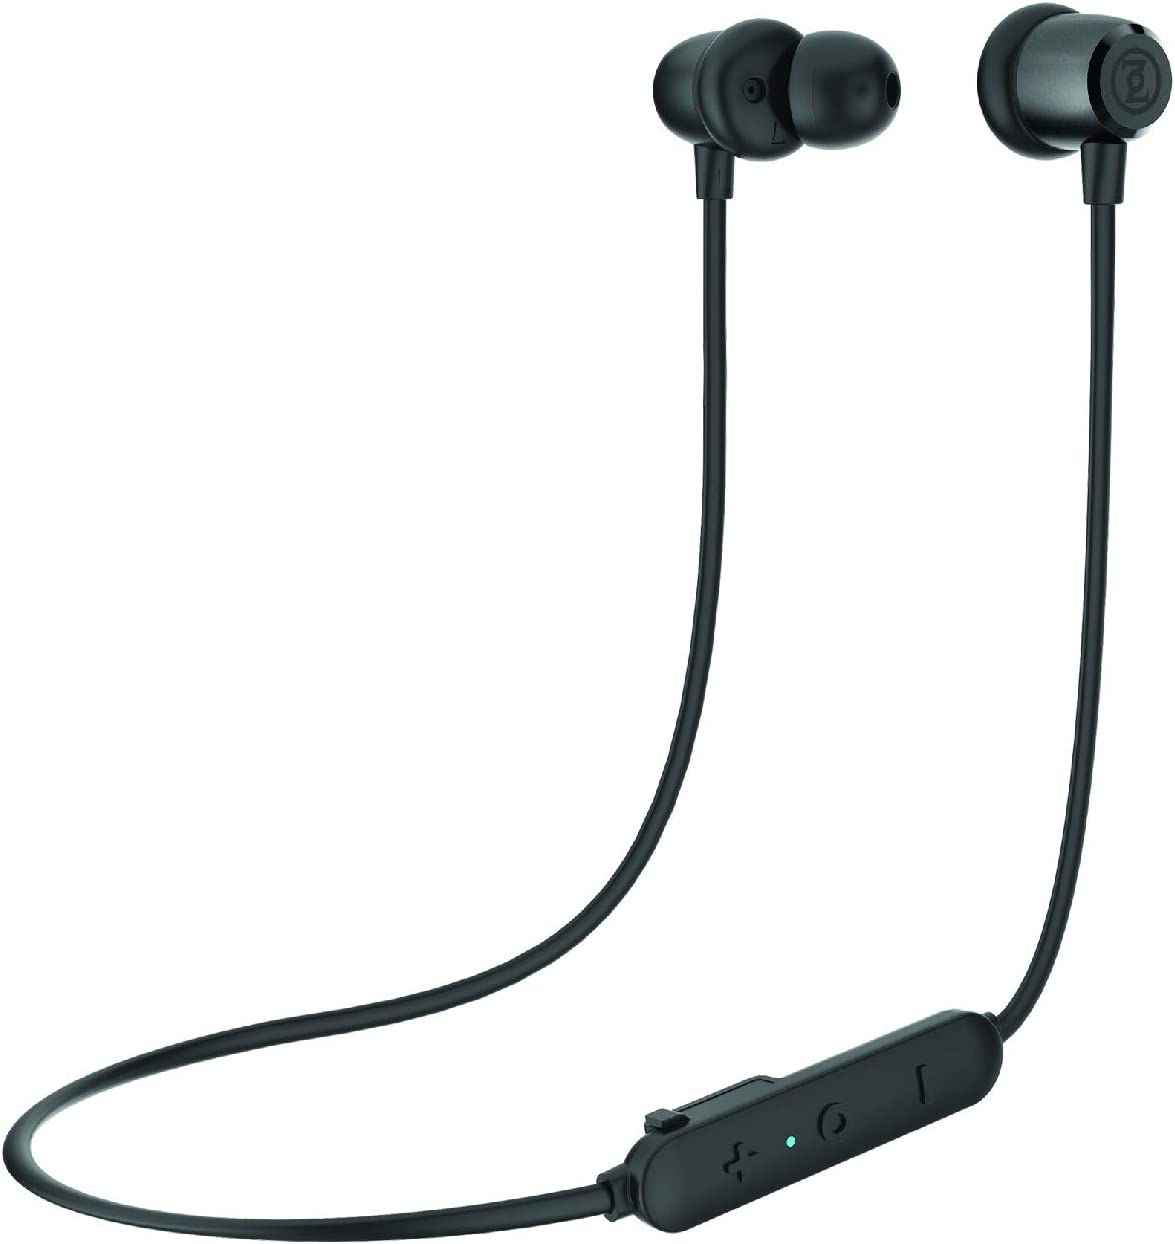 Amazon Com Oontz Angle 3 Budz Bluetooth Wireless Earbuds Waterproof Bluetooth Earbuds Superior Sound With Deep Bass Noise Cancelling Bluetooth Headset With Microphone 8 Hour Playtime Ipx7 Black Home Audio Theater